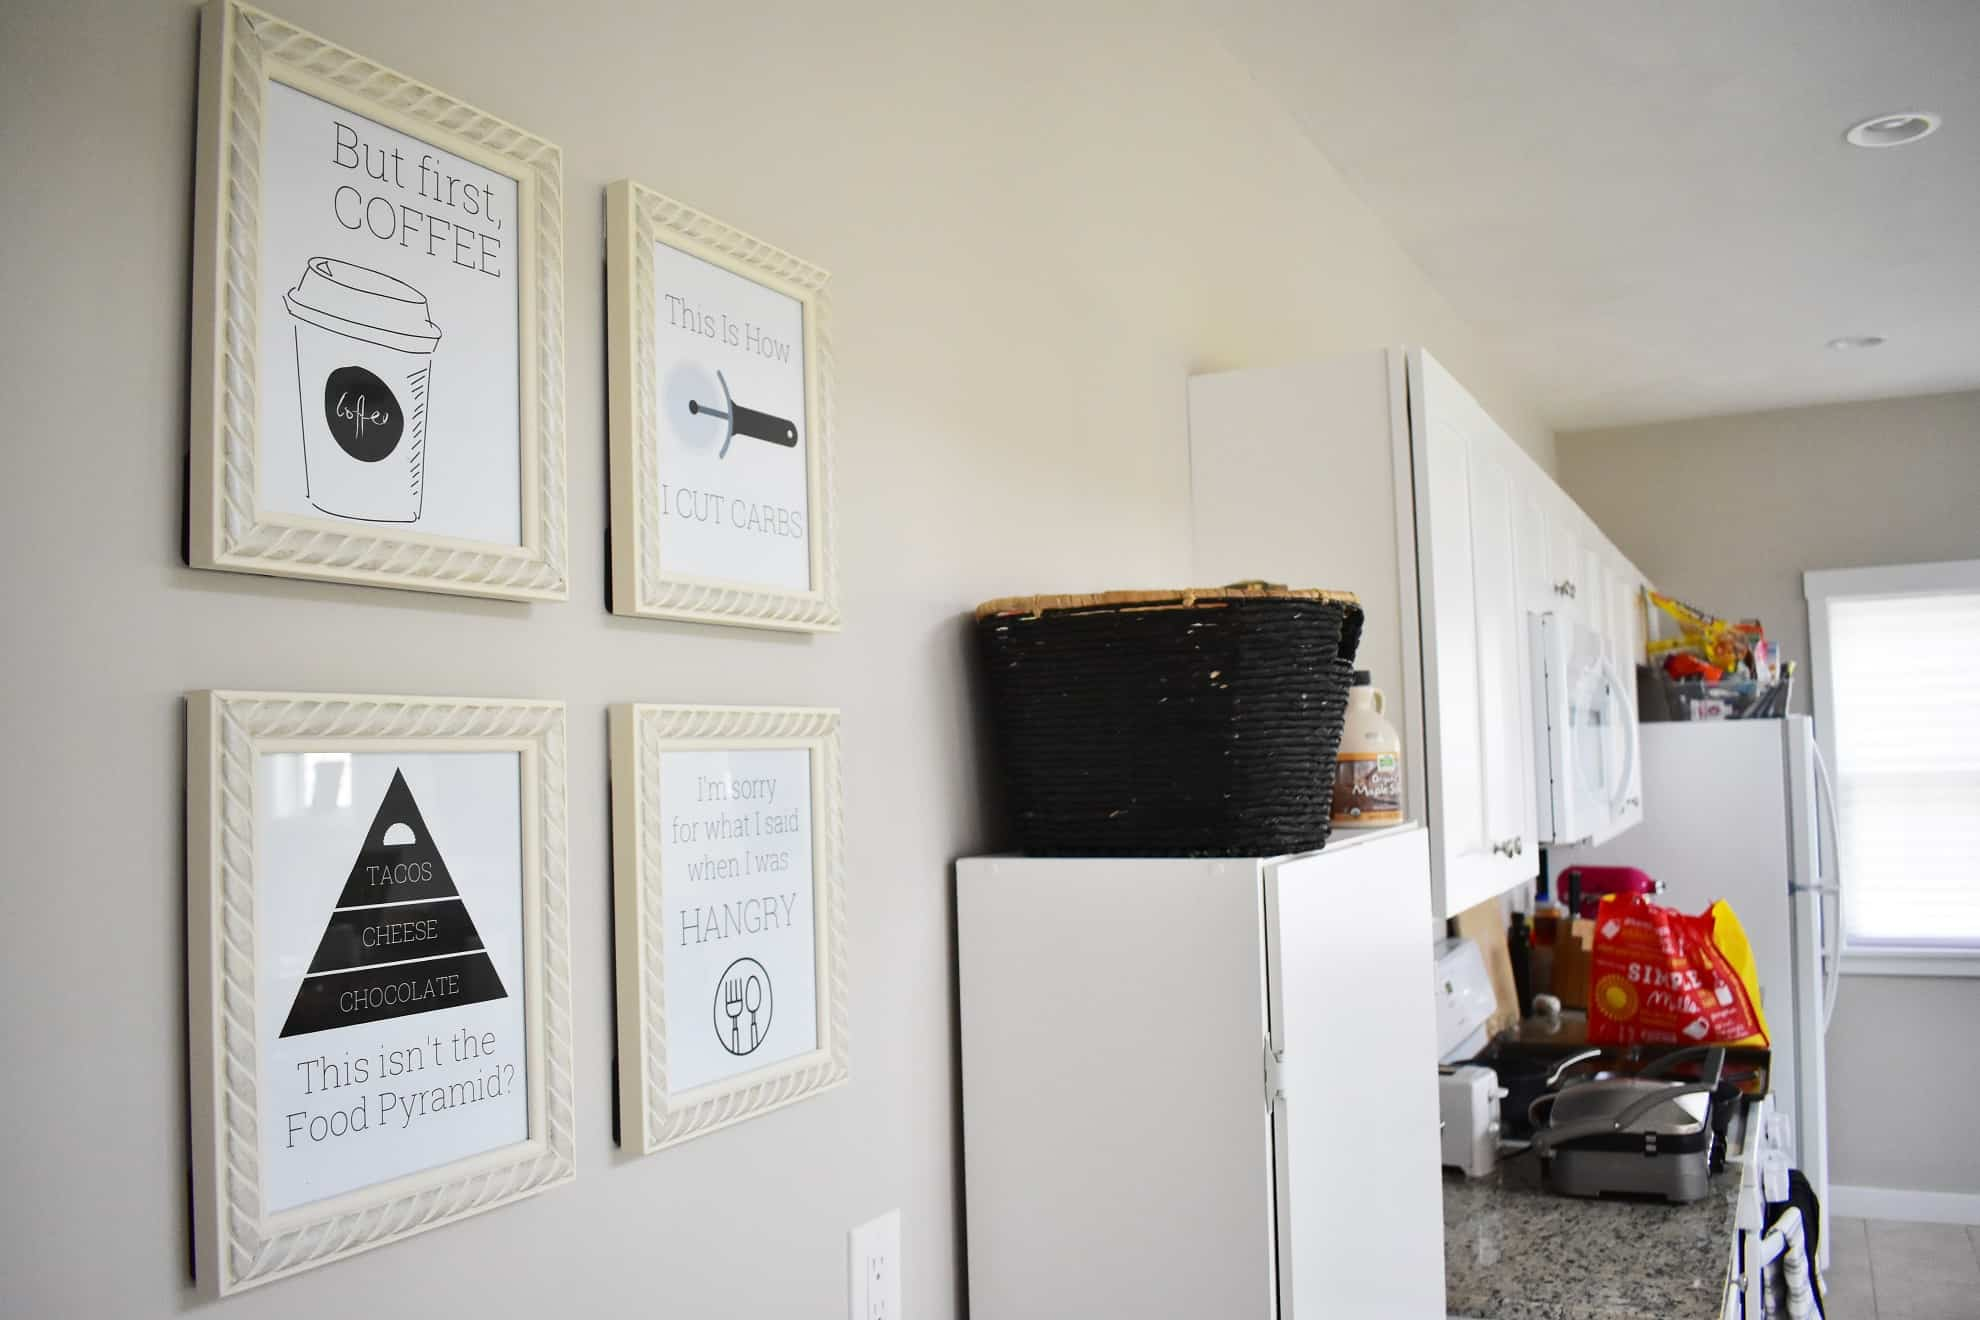 Kitchen Printables Hanging on a Wall